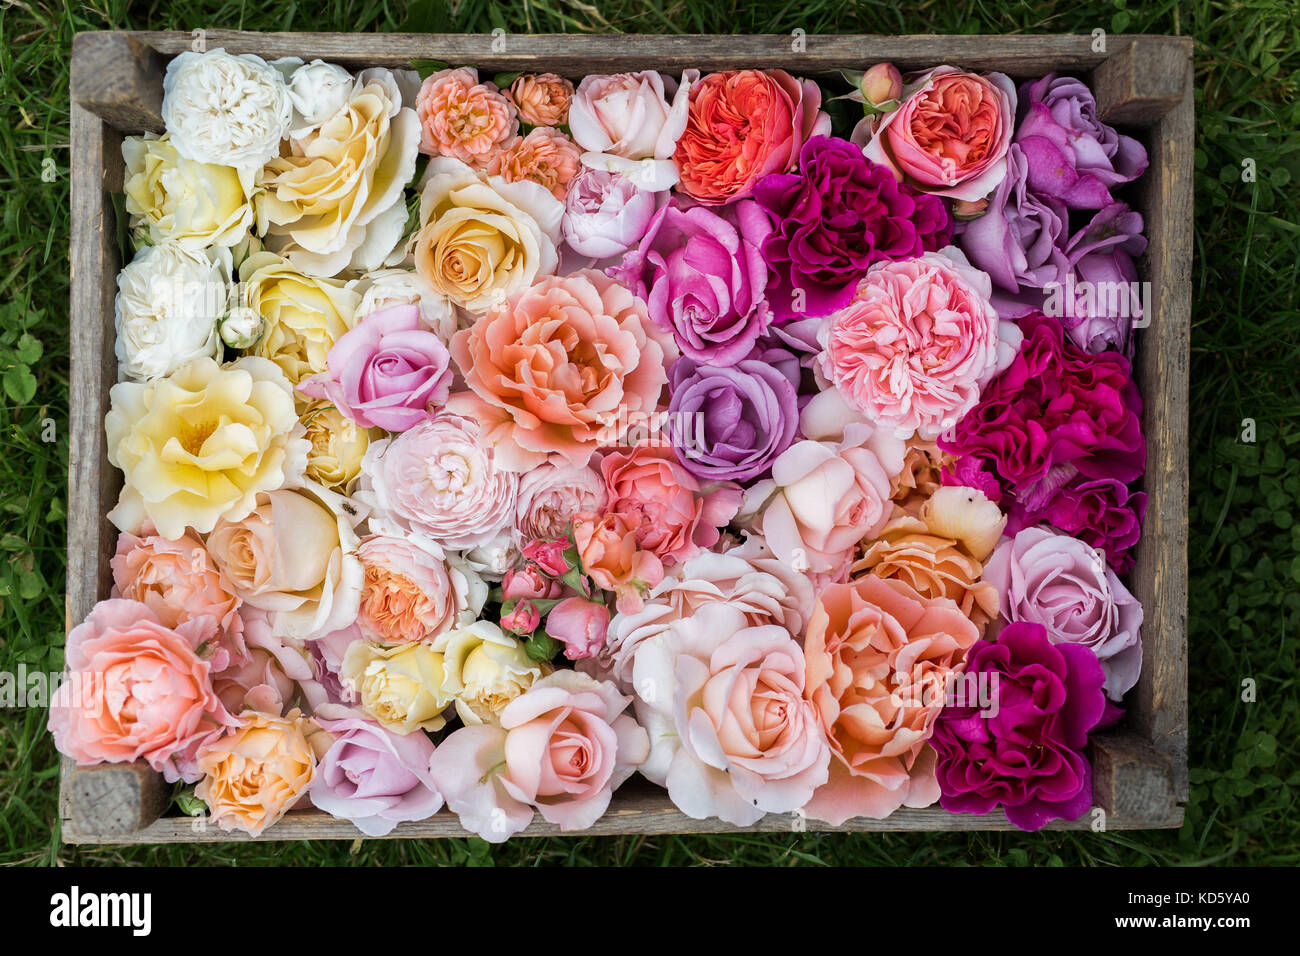 Say It With Roses Imágenes De Stock & Say It With Roses Fotos De ...